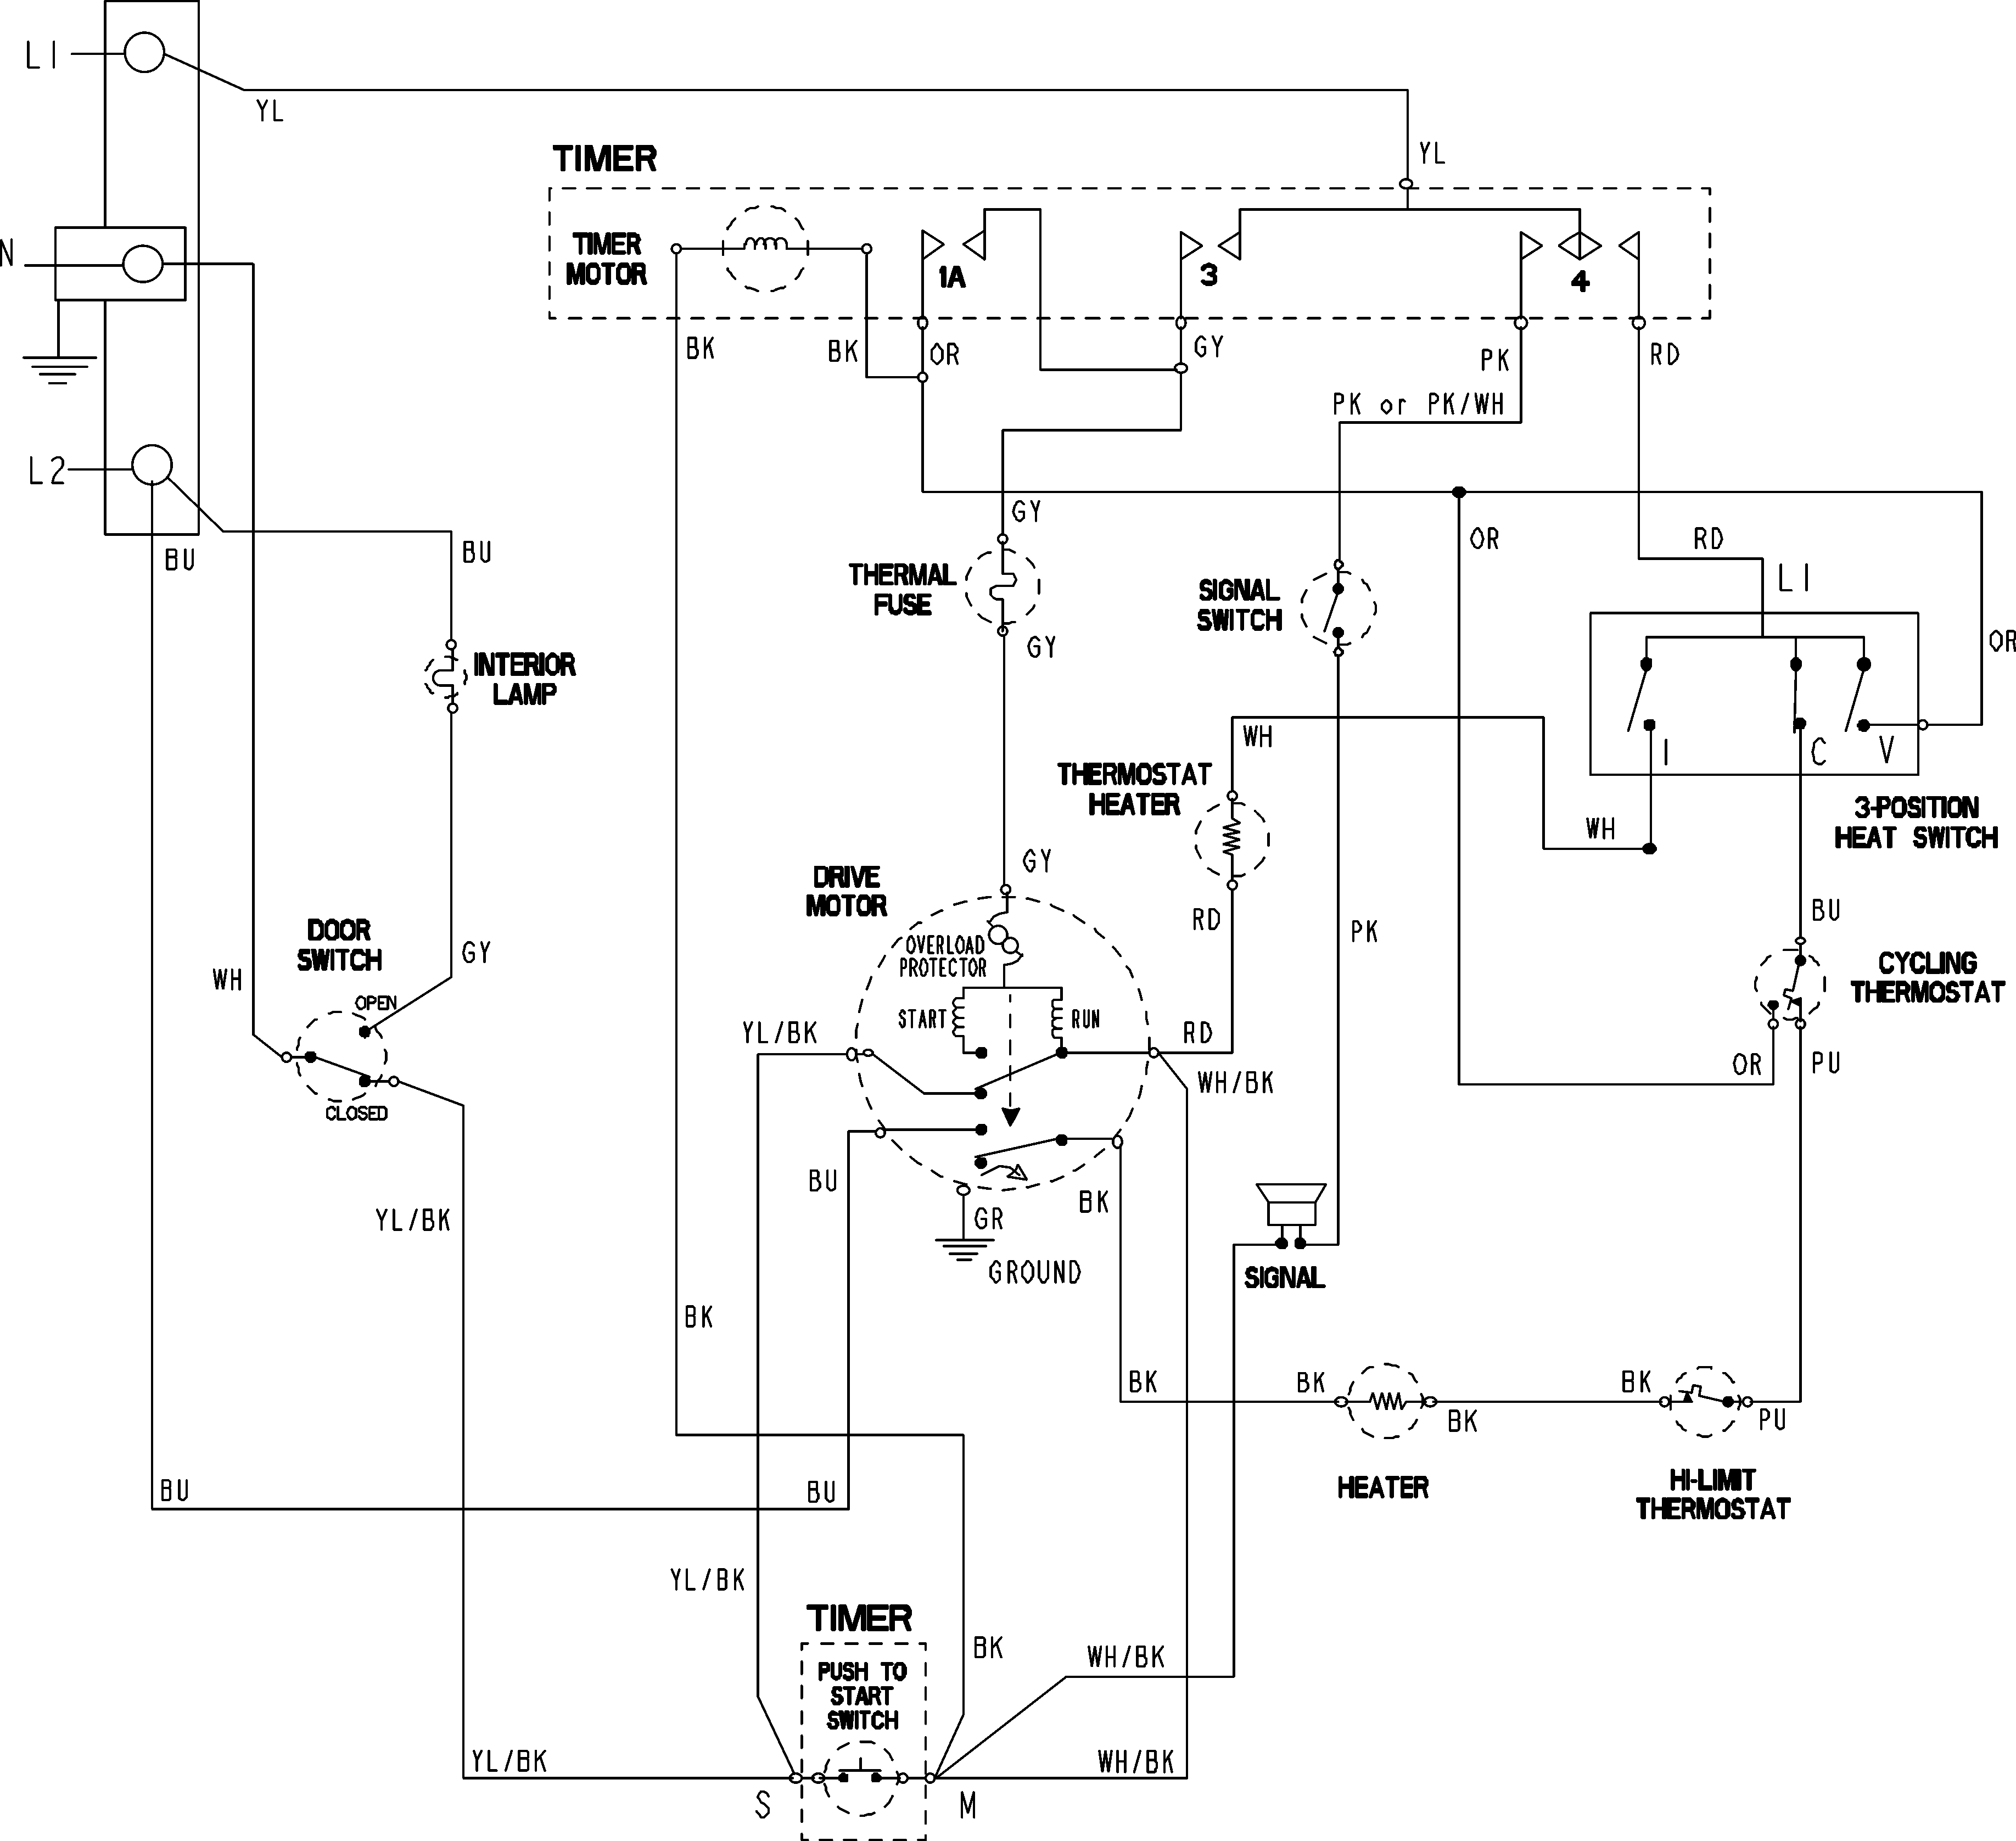 hight resolution of pigtail wire diagram for dryer